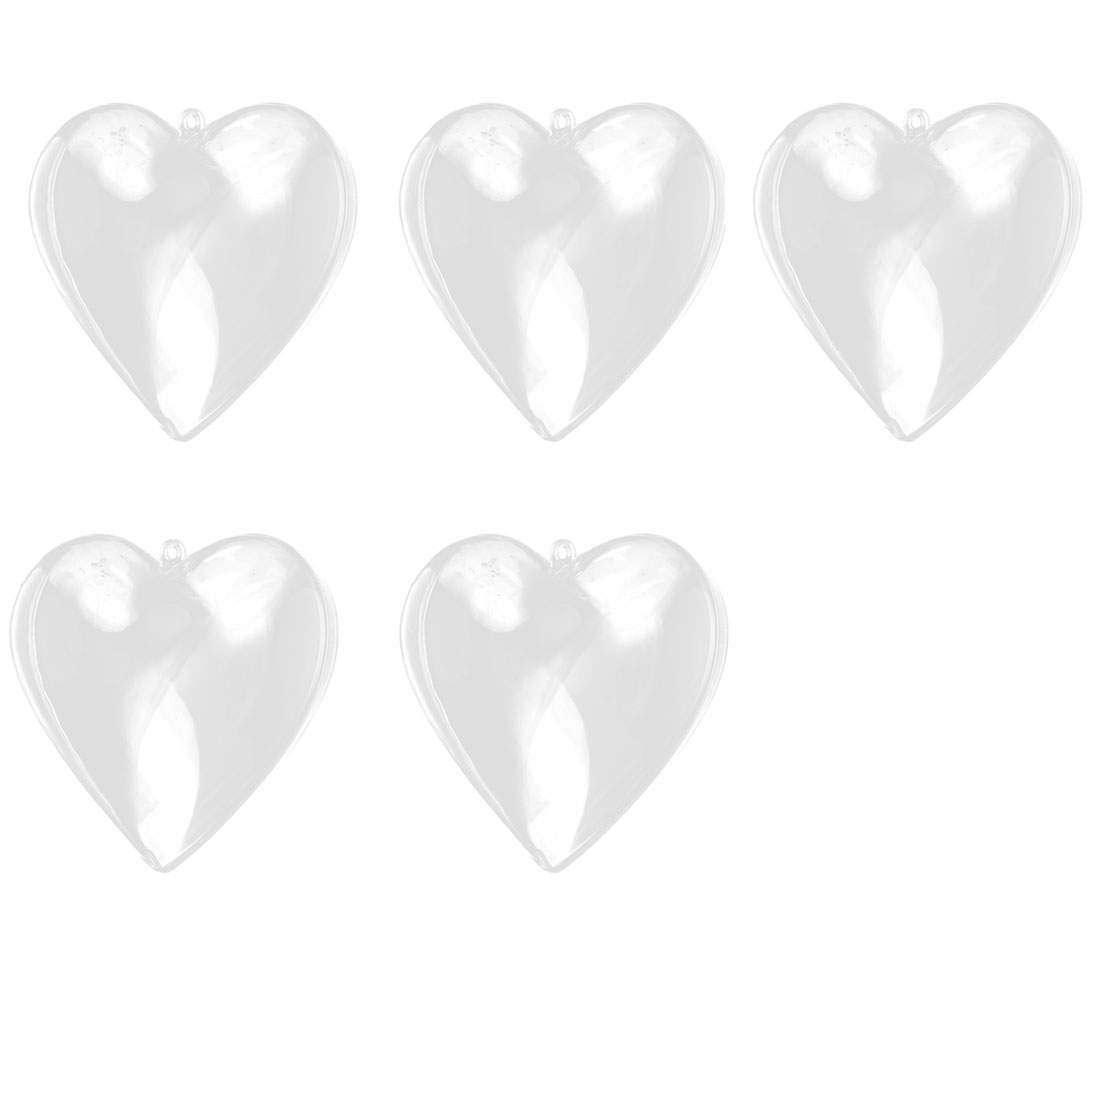 Home Garden Plastic Heart Shaped Christmas Hanging DIY Craft Present Bauble Clear 5pcs